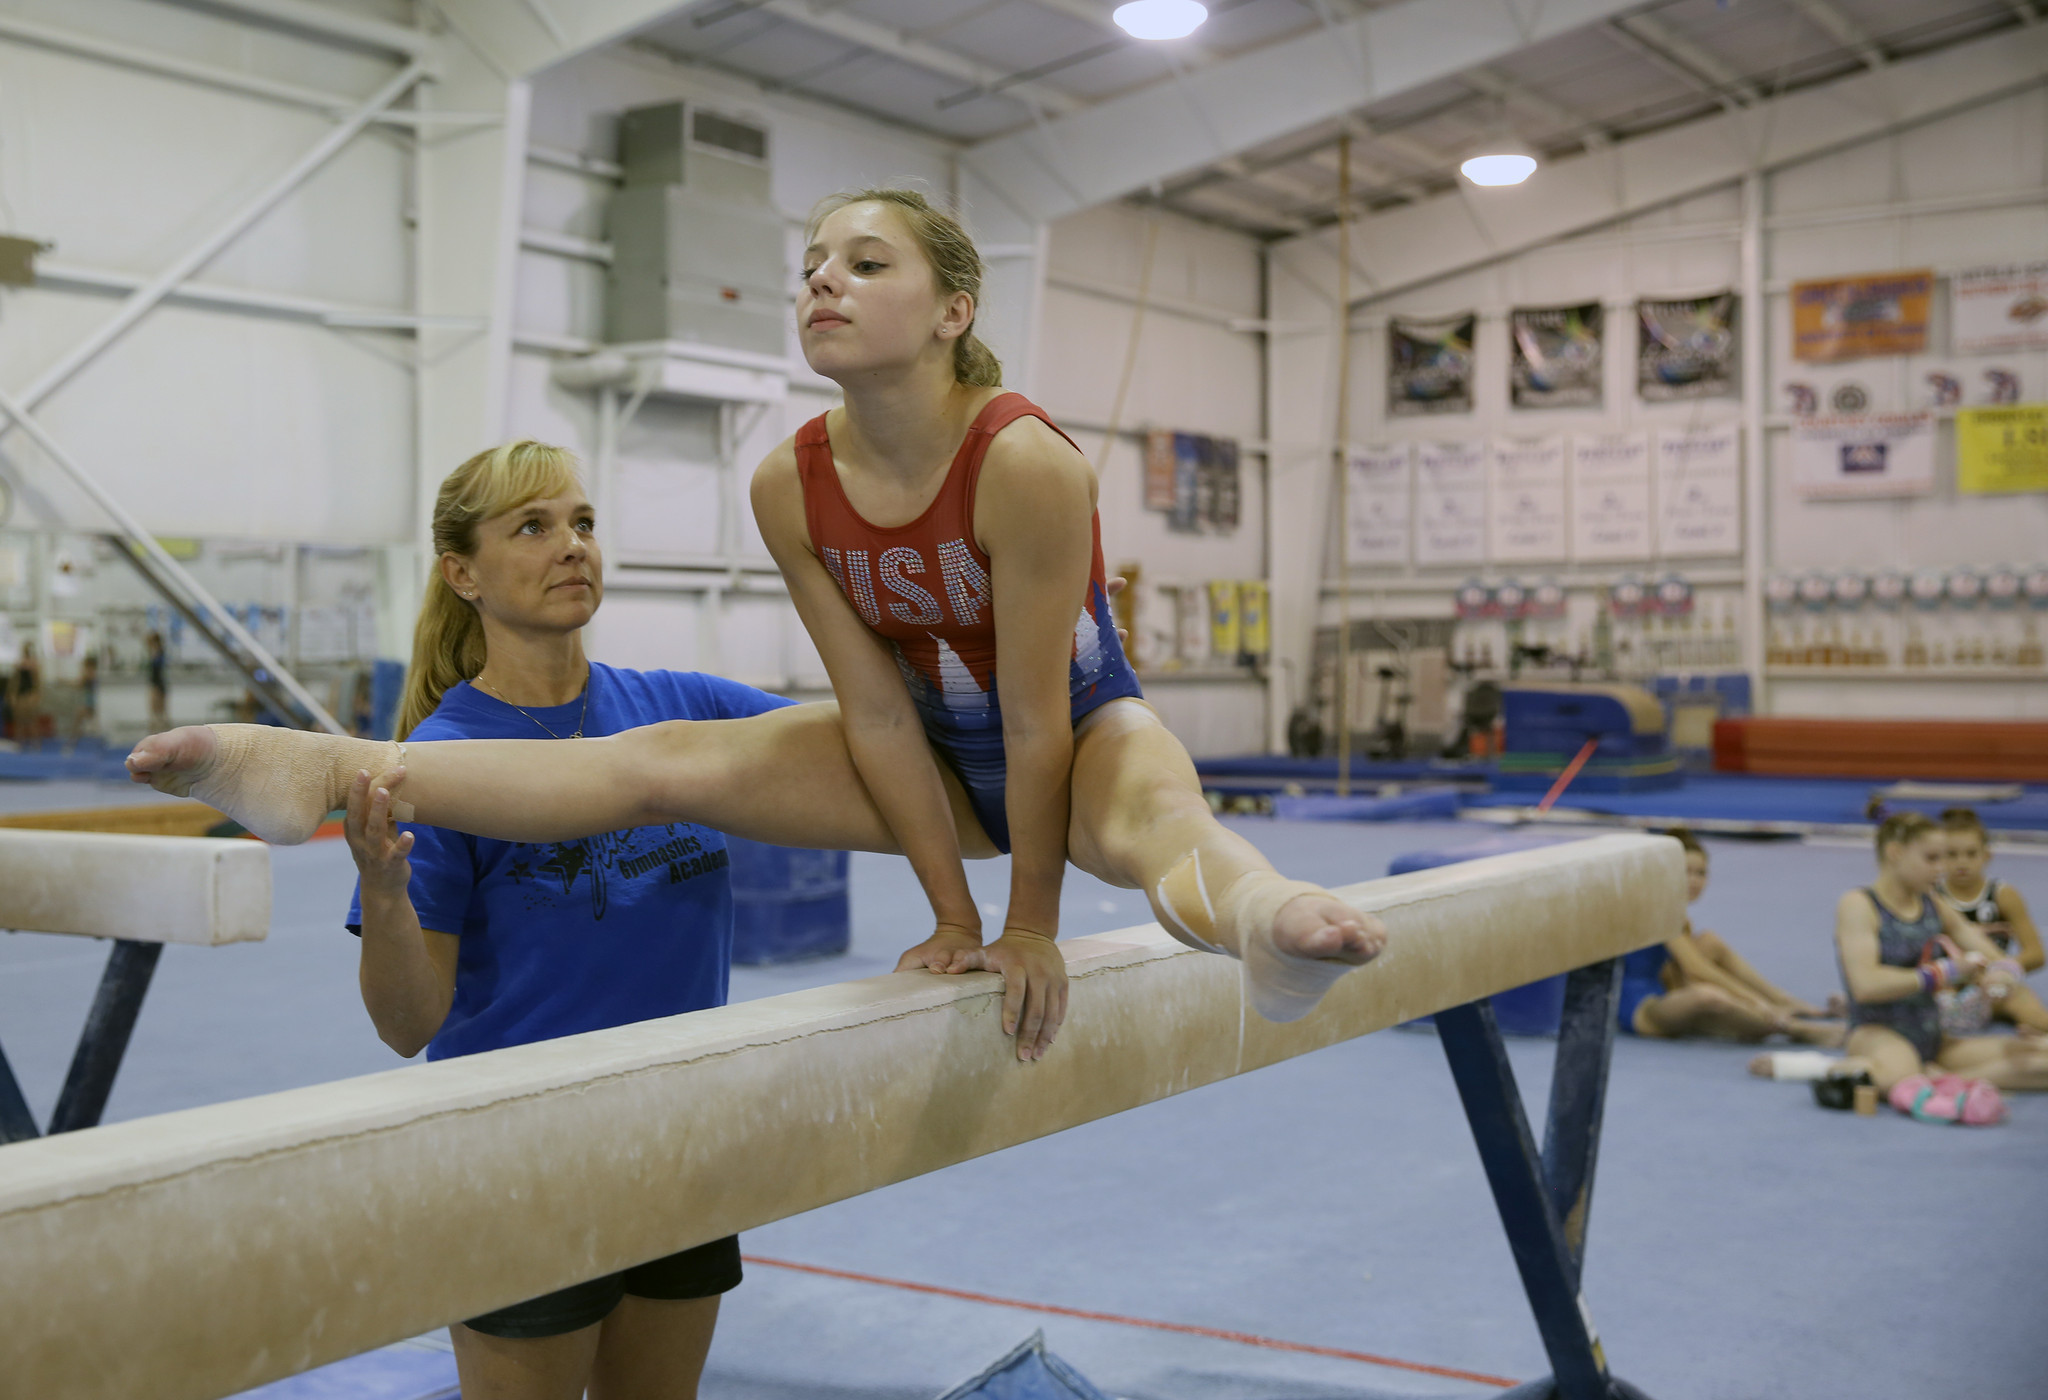 Former Olympian Brandy Johnson Coaches Daughter In Olympic